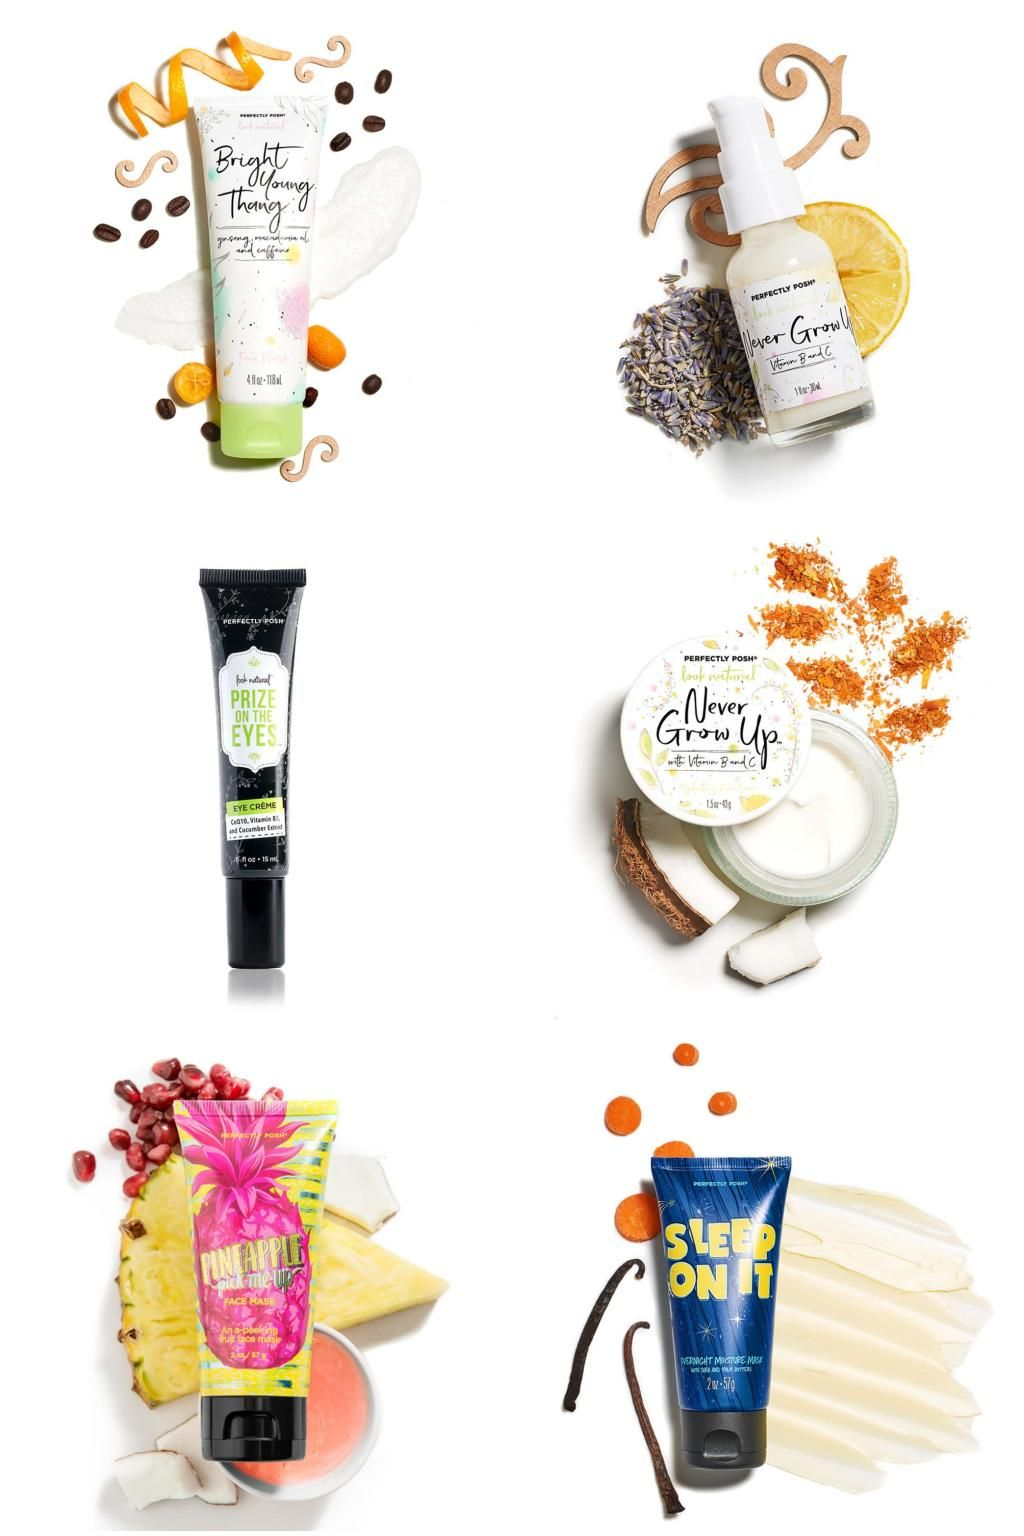 Dry Skin Facial Looking for an amazing skin care routine